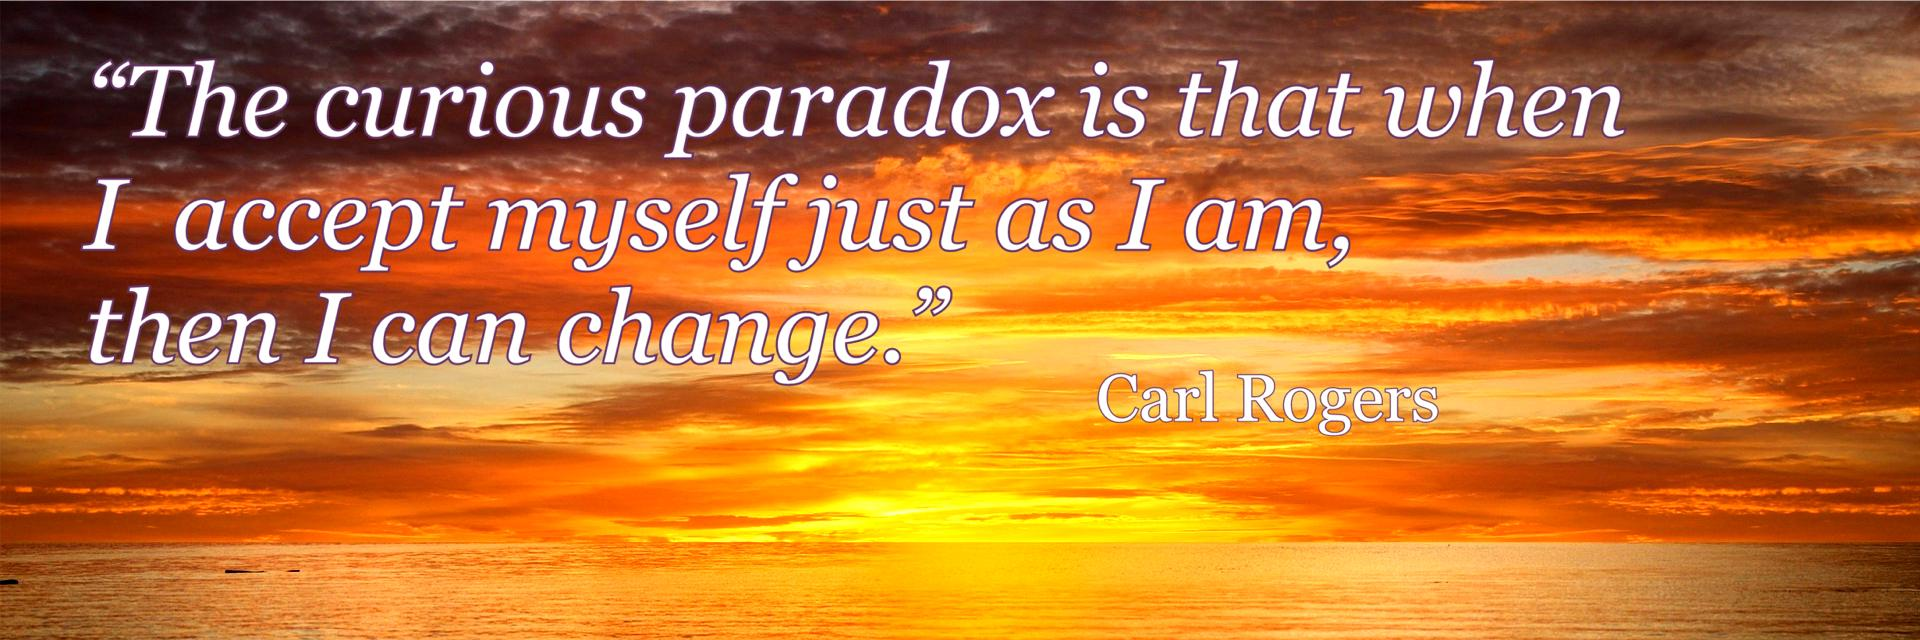 """The curious paradox is that when I  accept myself just as I am,  then I can change."" -  Carl Rogers.  DML Counselling & Psychotherapy, County Wexford, Ireland"